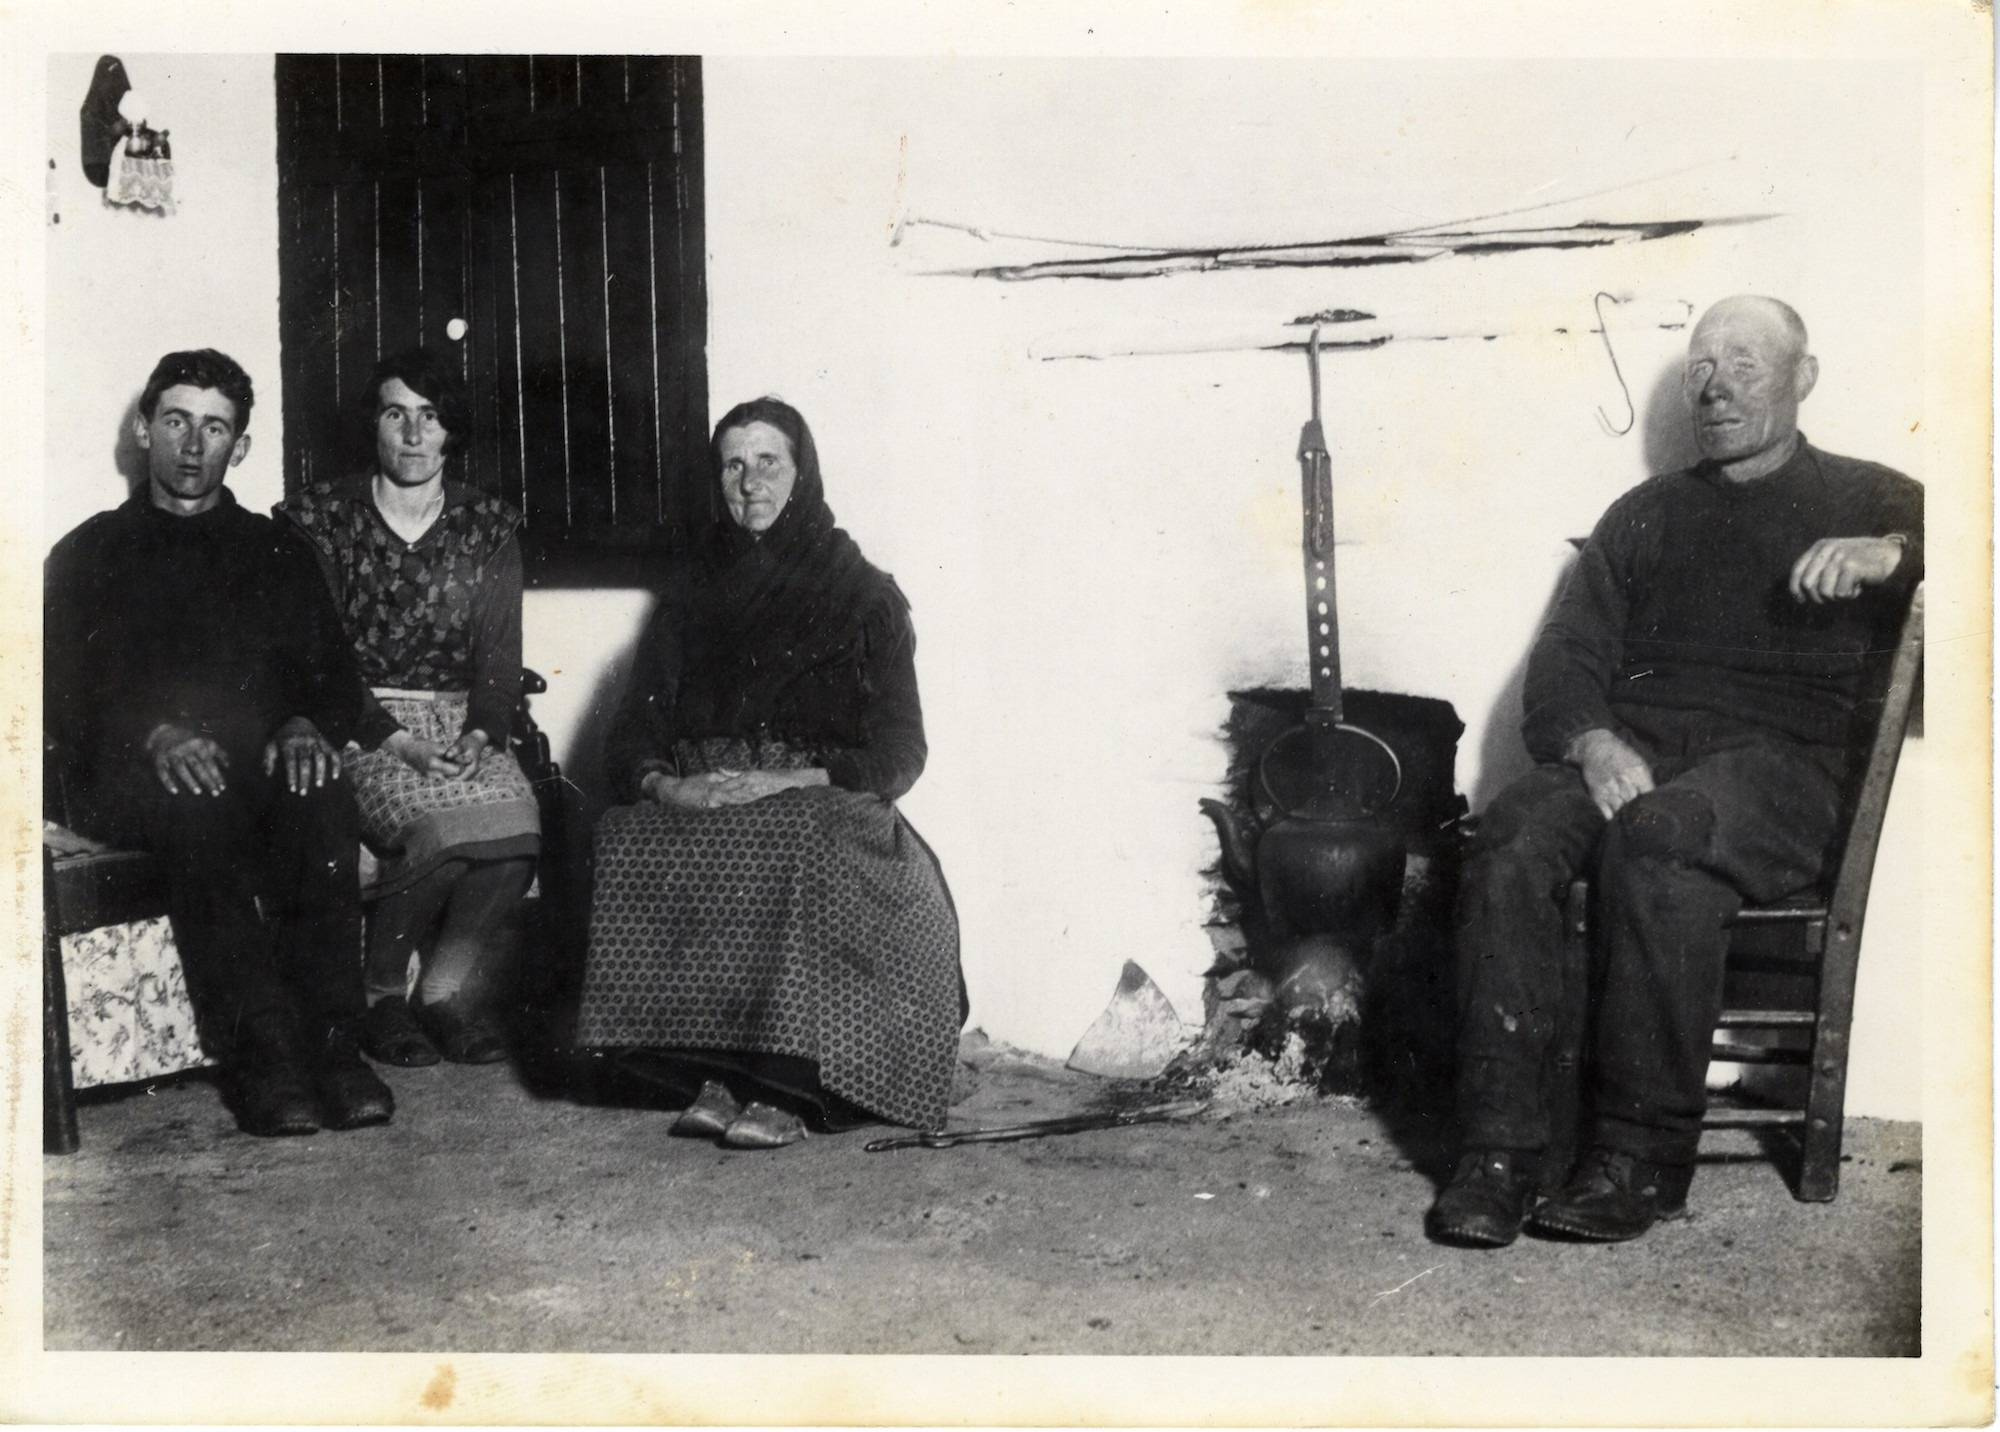 Those that remain at home. Séamuisín Buffer Kean, the youngest son, Peig, mother and father. 1933.